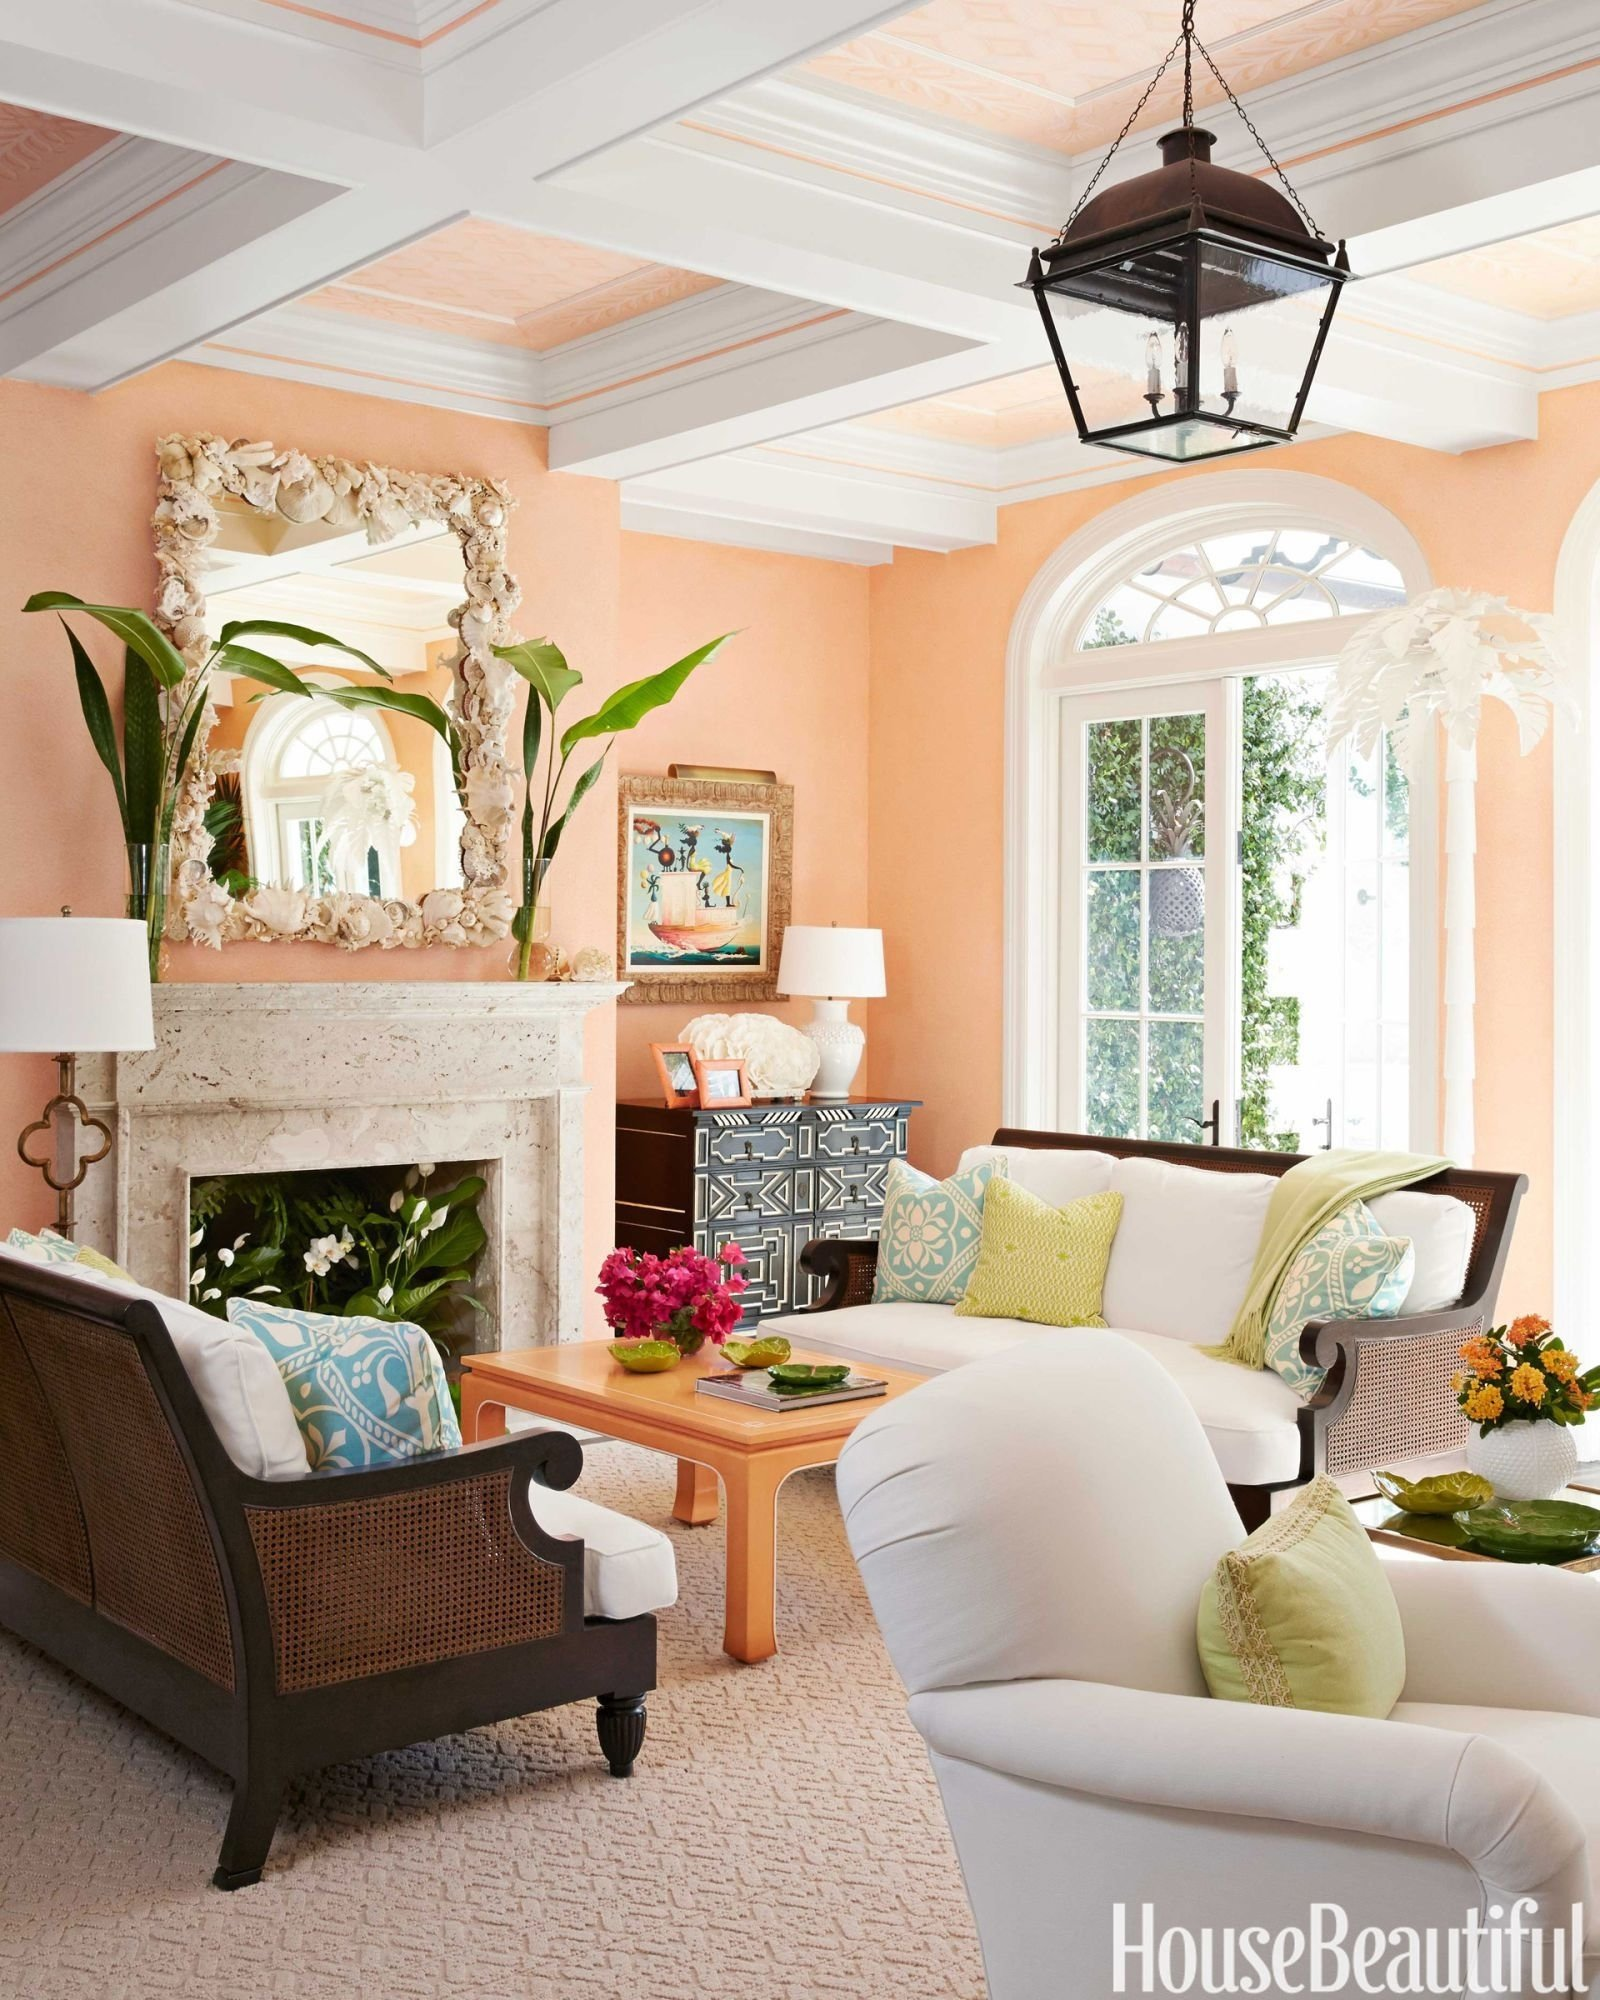 10 Attractive Wall Color Ideas For Living Room 15 best living room color ideas top paint colors for living rooms 2020